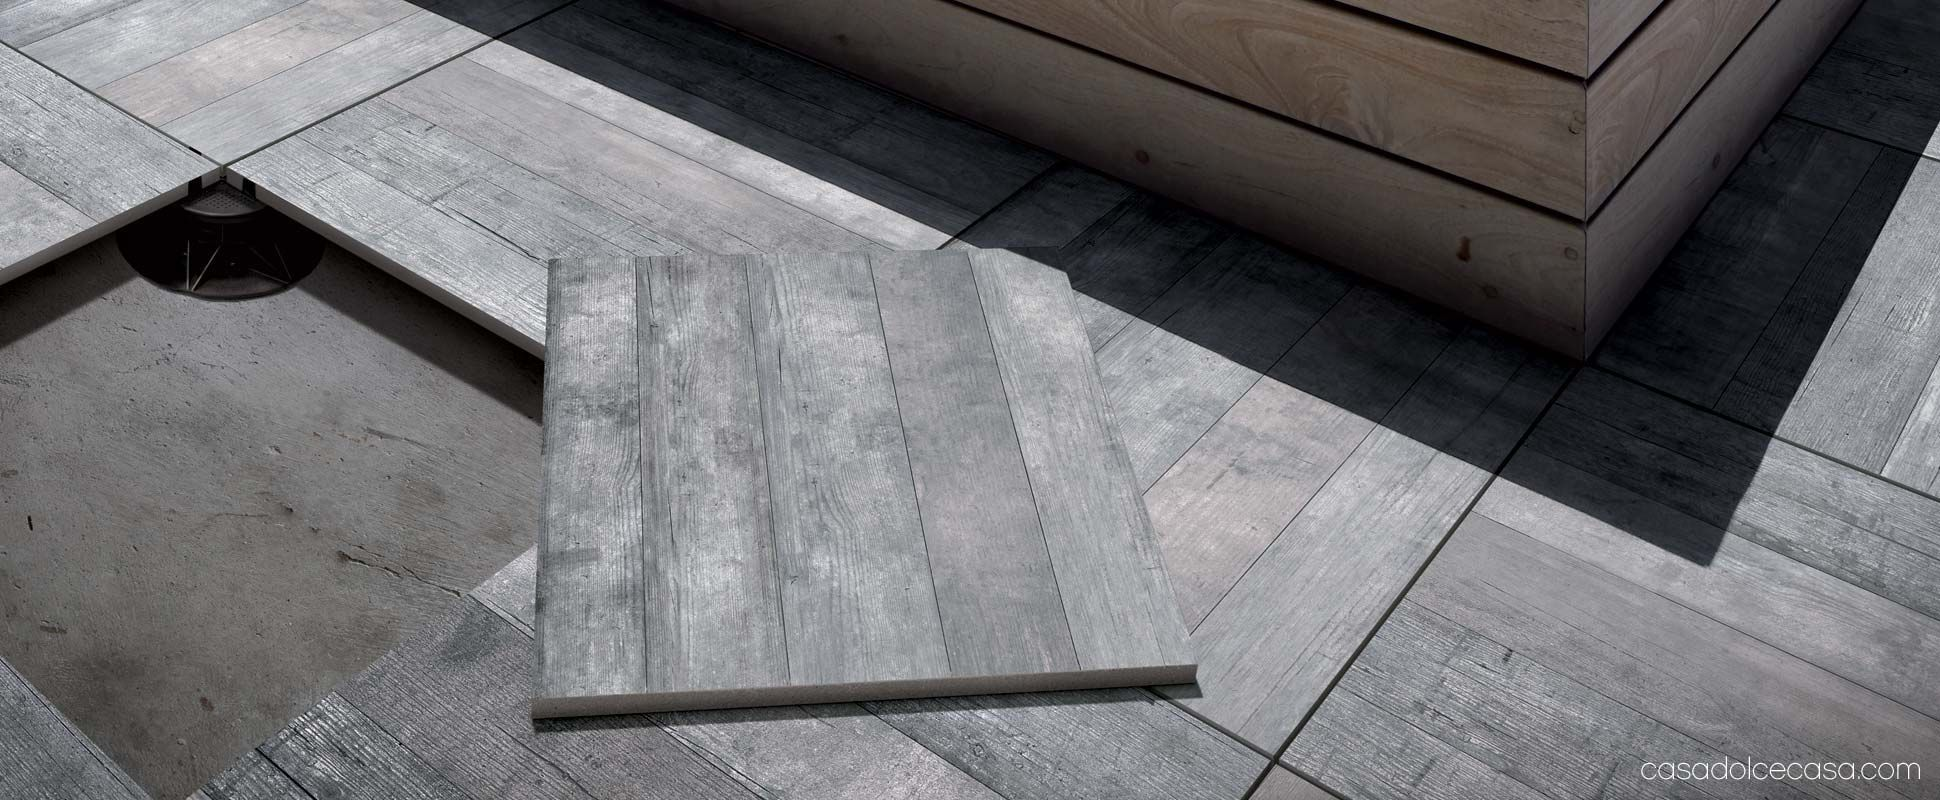 Self Laying Wood Effect Floor Tiles For